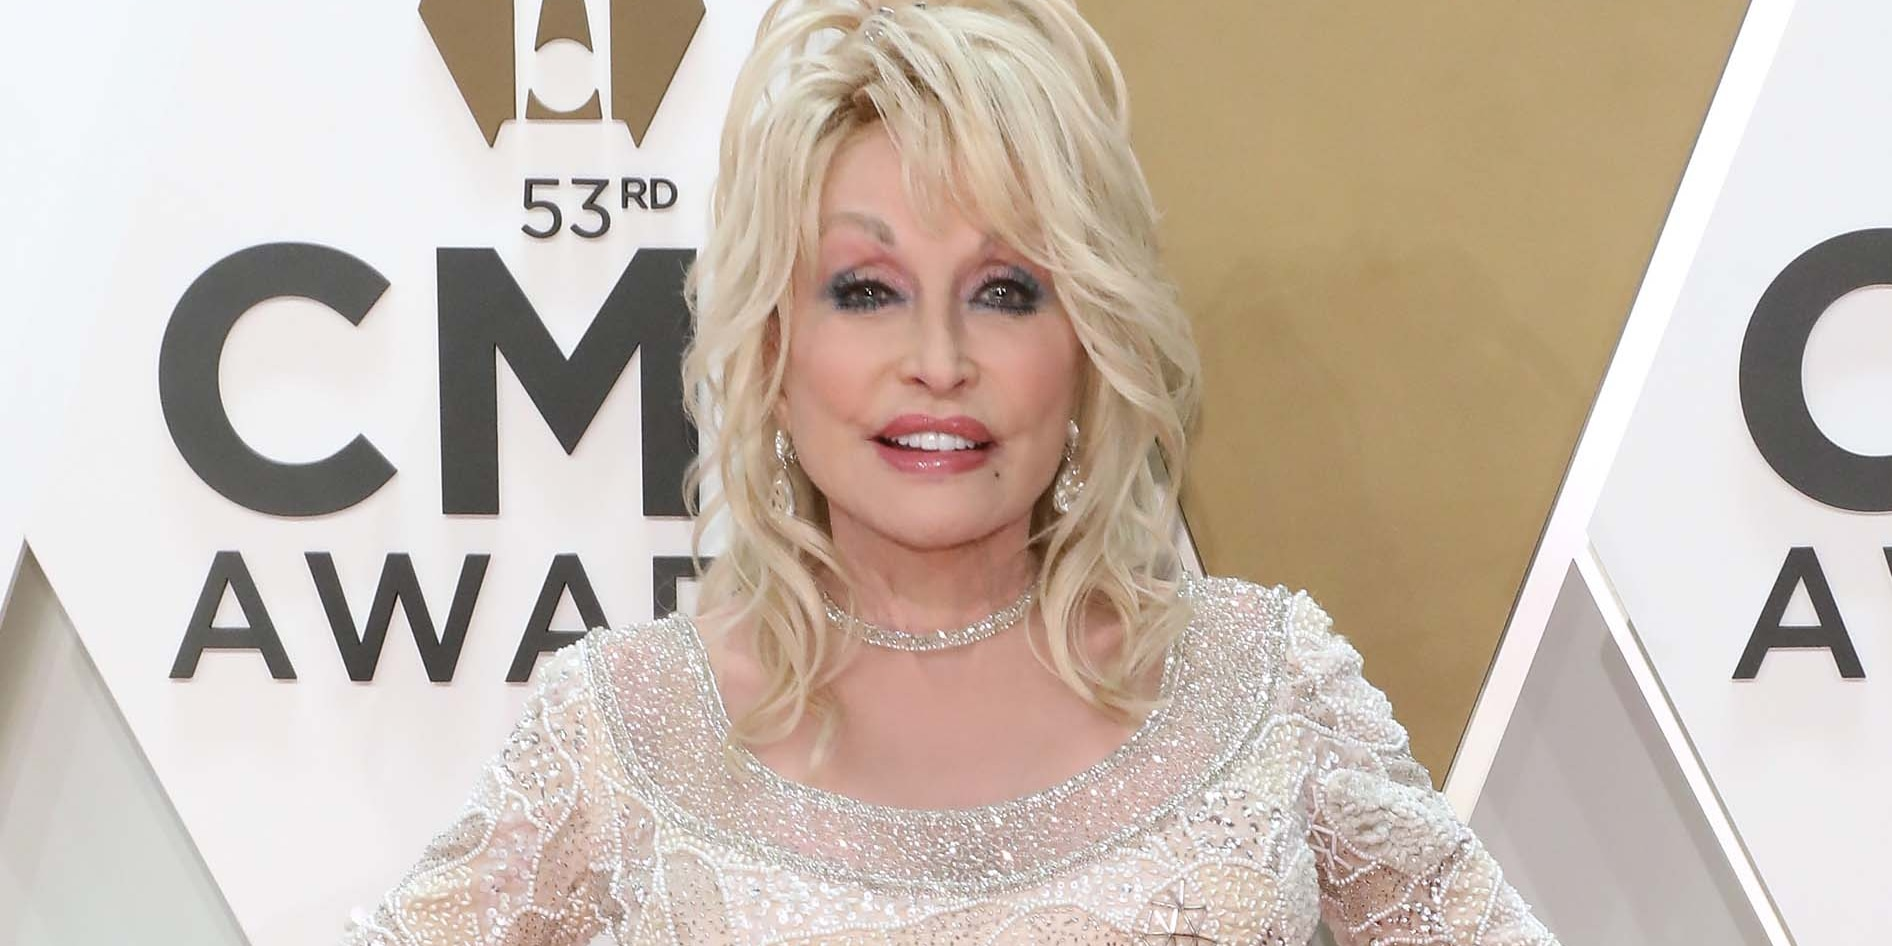 Dolly Parton spoke up about aging in a conversation with Oprah Winfrey.